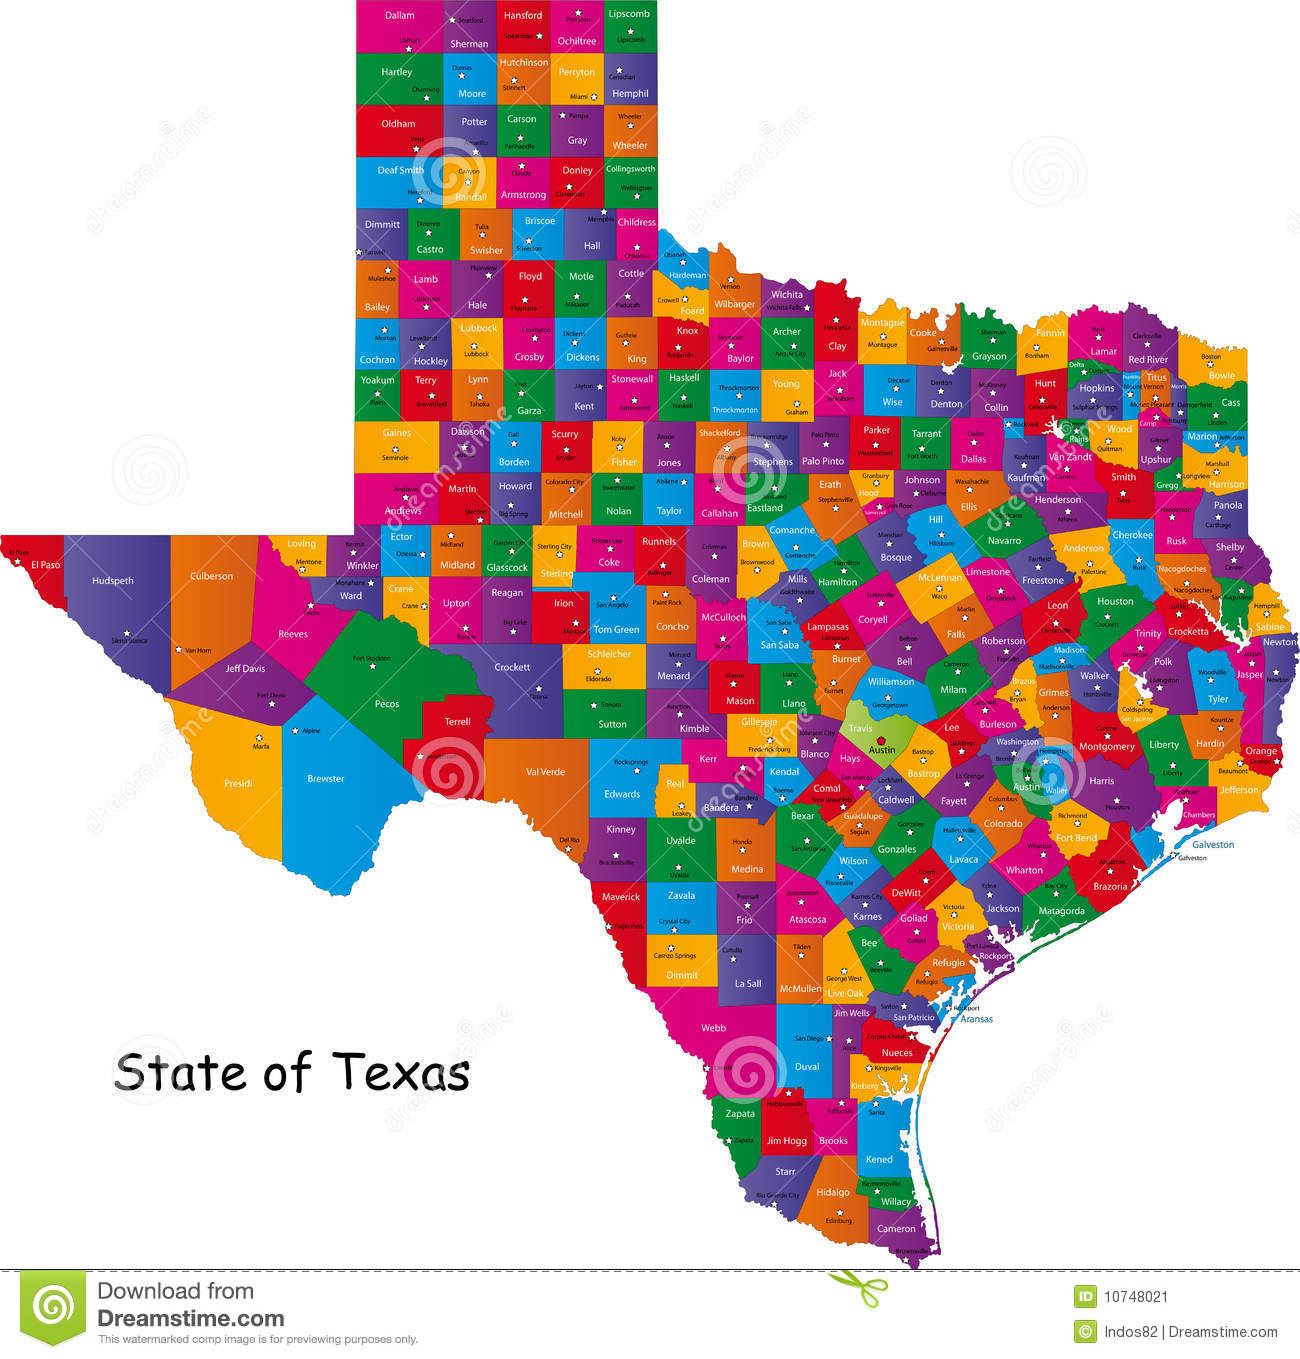 State Of Texas Counties Map.State Of Texas Stock Vector Illustration Of Isolated 10748021